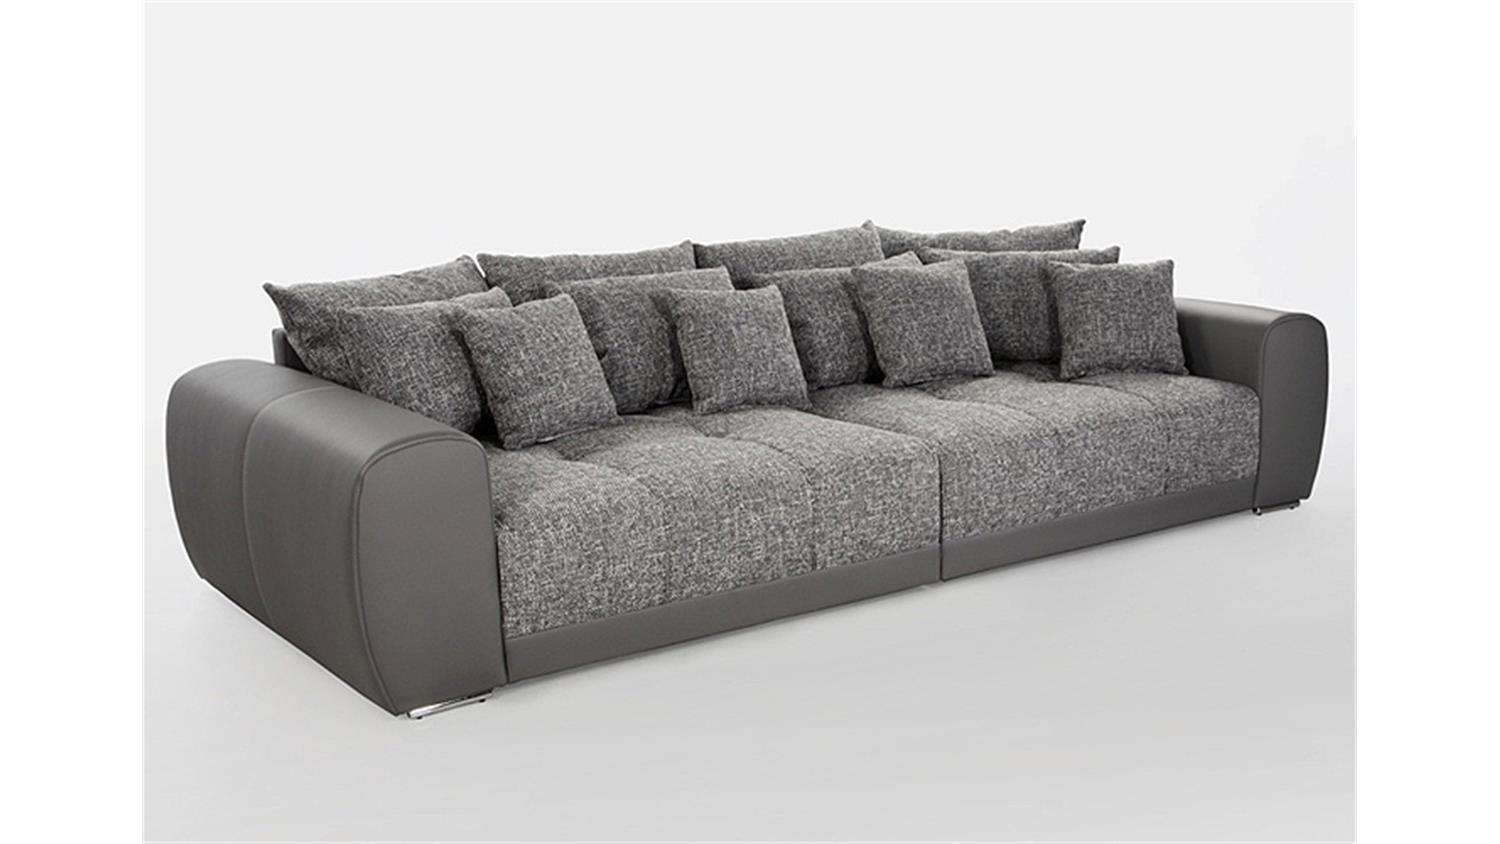 big sofa sam polsterm bel xxl sofa in grau hellgrau 310 cm. Black Bedroom Furniture Sets. Home Design Ideas